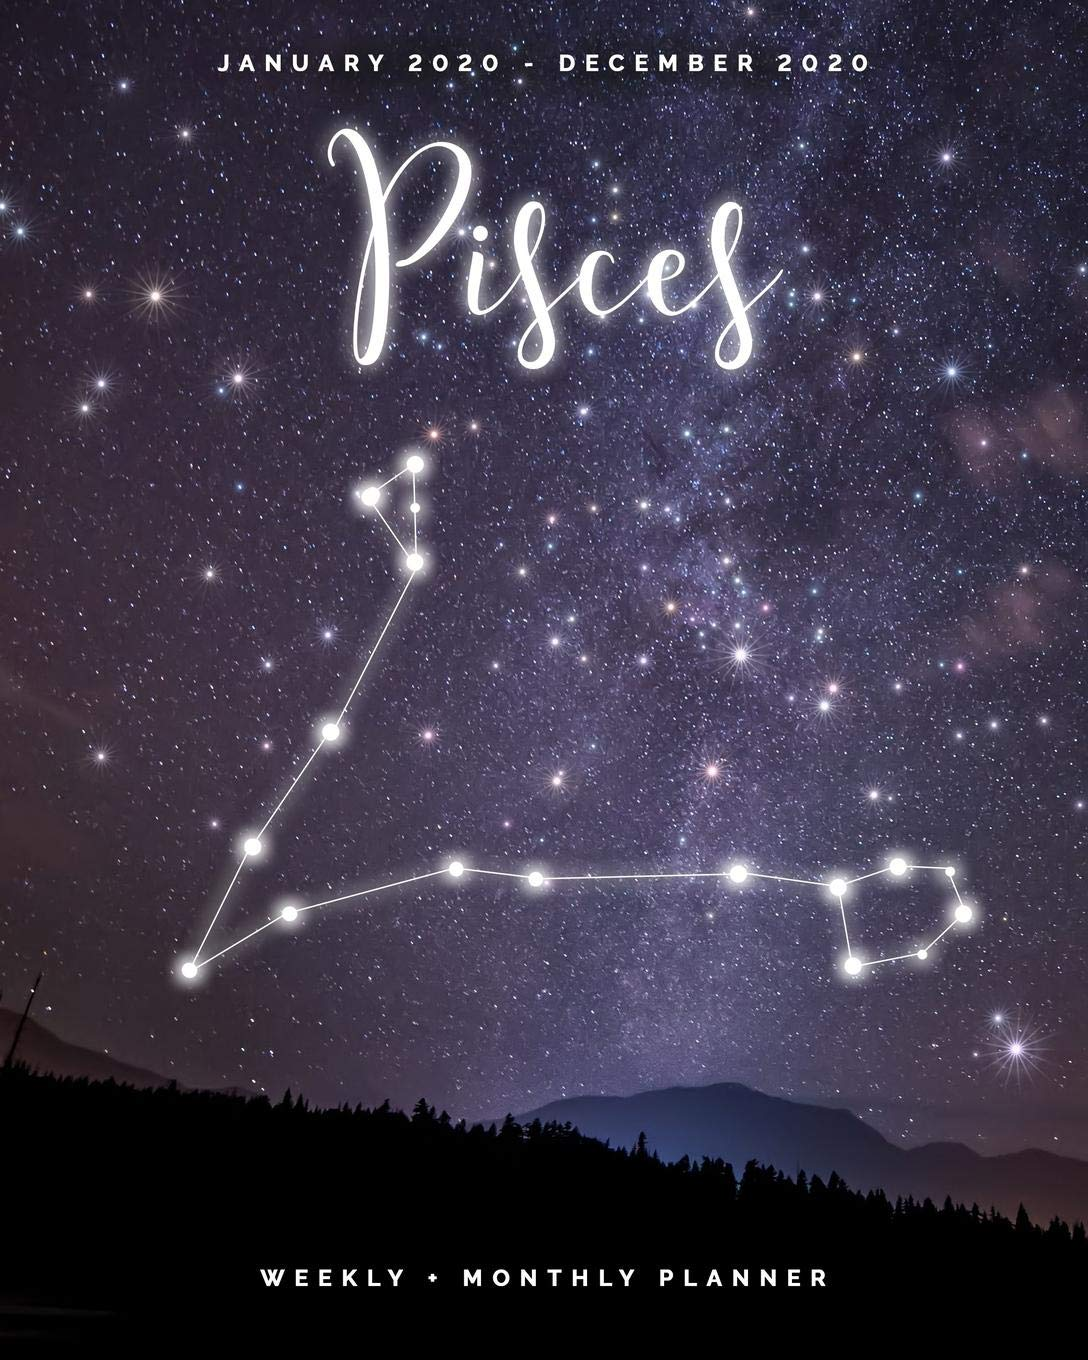 Is Pisces Lucky In 2020?